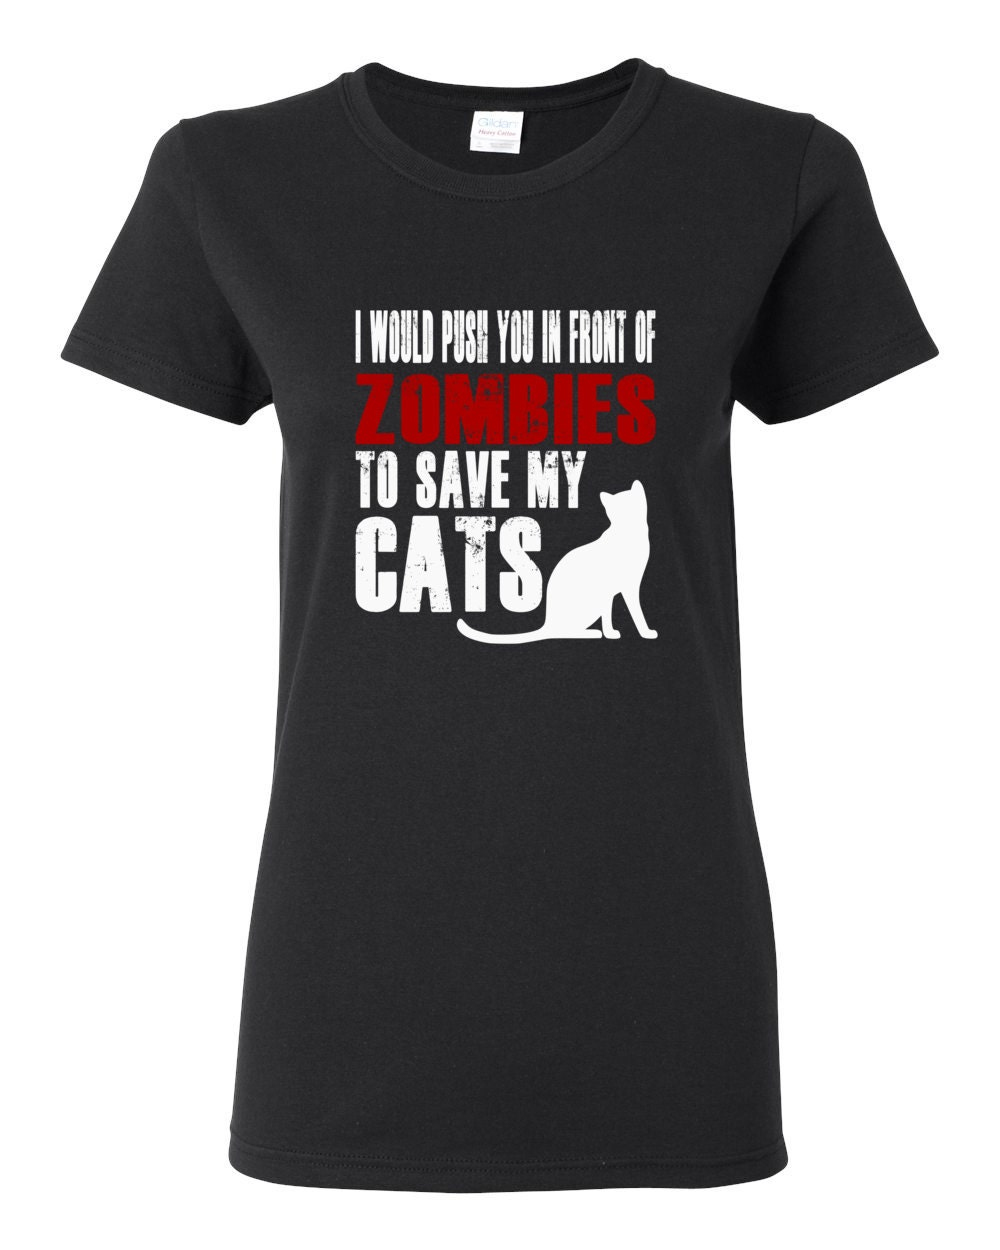 Cat Womens Shirt - I Would Push You In Front Of Zombies To Save My Cats Womens T-shirt